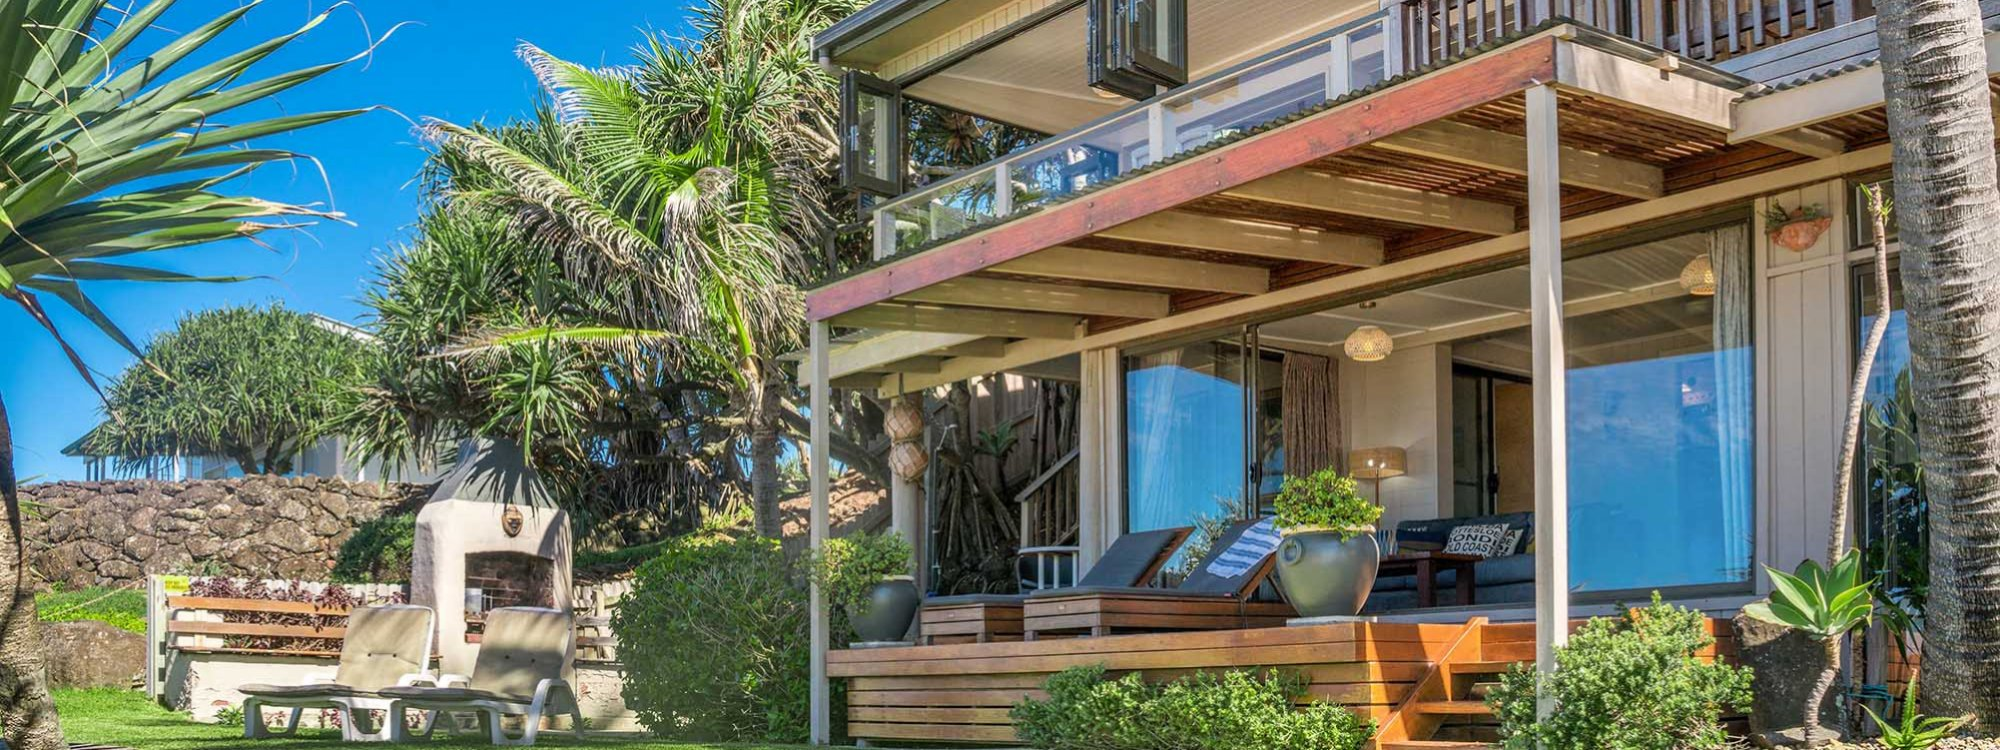 Moonstruck - Byron Bay - House from front lawn b